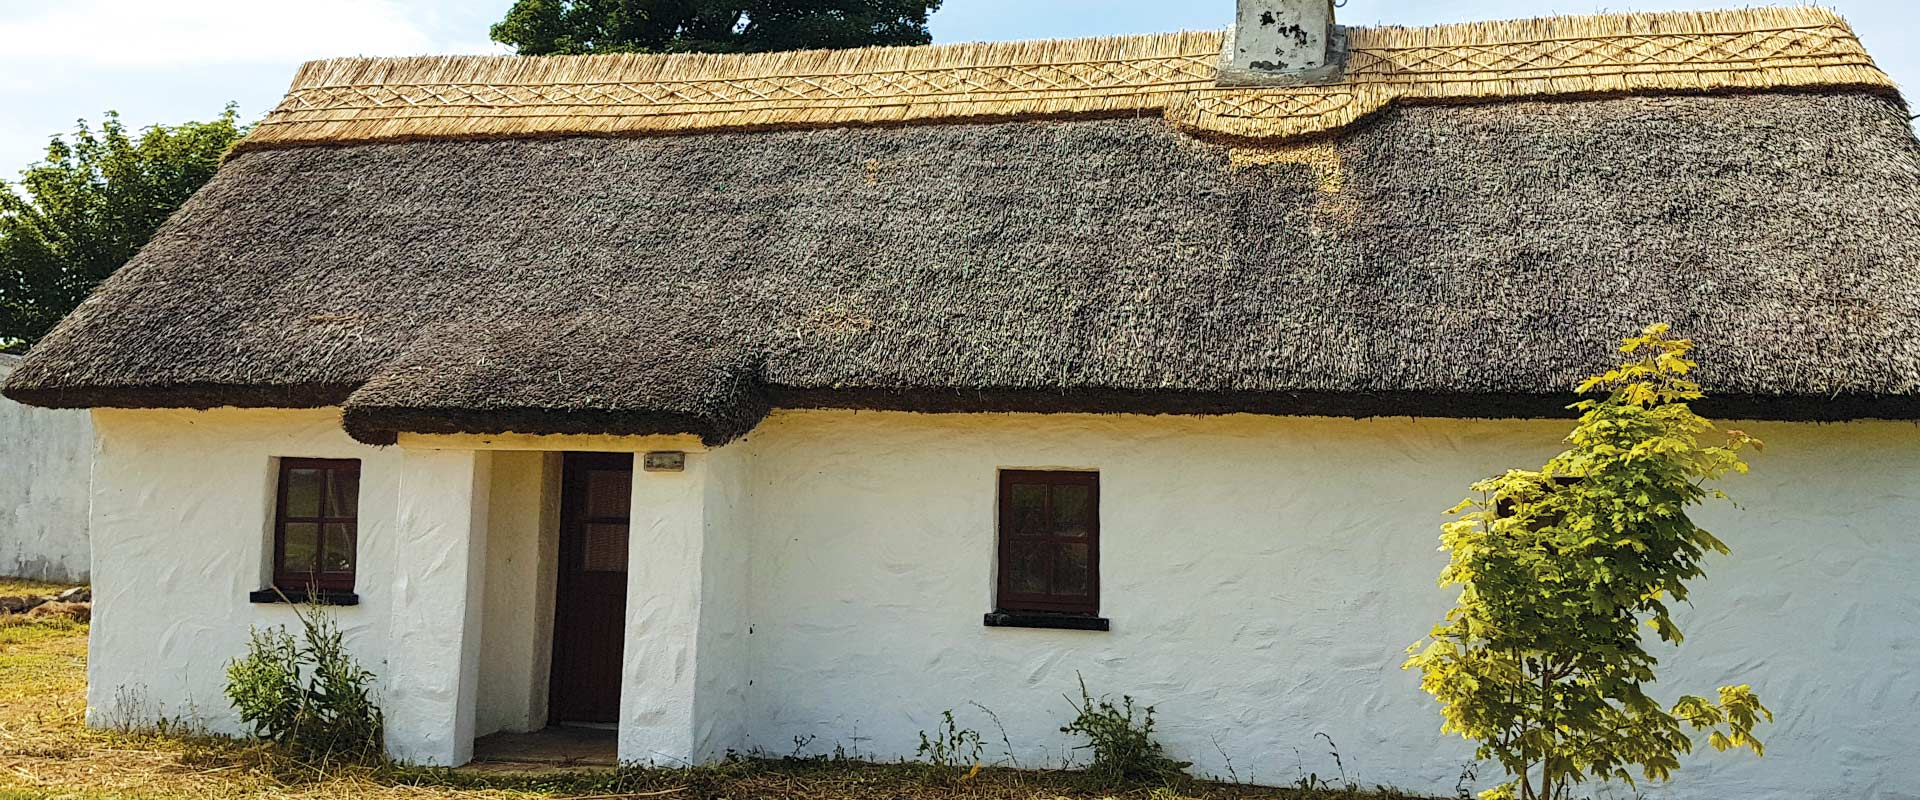 Benefits of Thatching